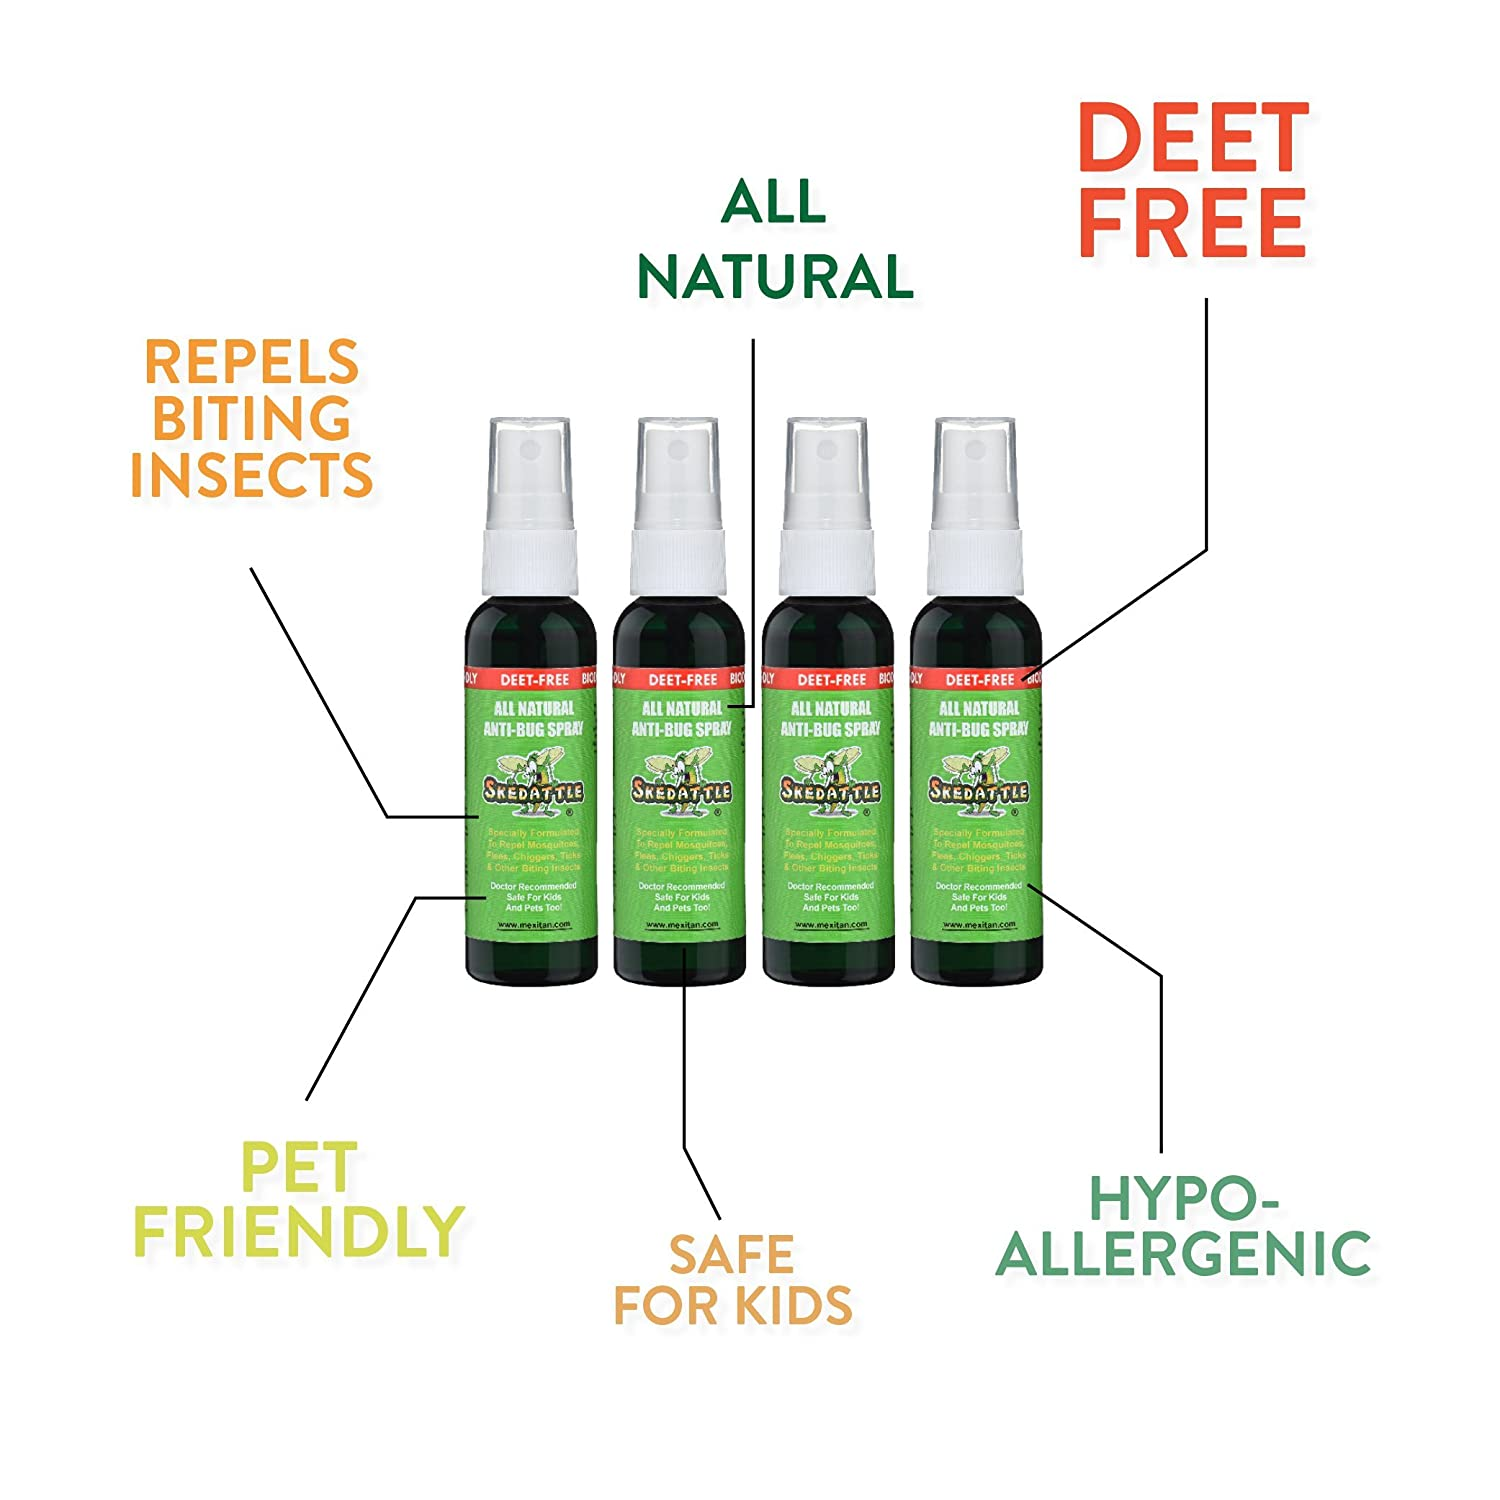 Skedattle All Natural Insect Repellent Deet Free Beauty Barn Kid Citronella Body Oil Safe For Kids And Pets 2 Fl Oz Travel Spray 4 Pack Sports Outdoors